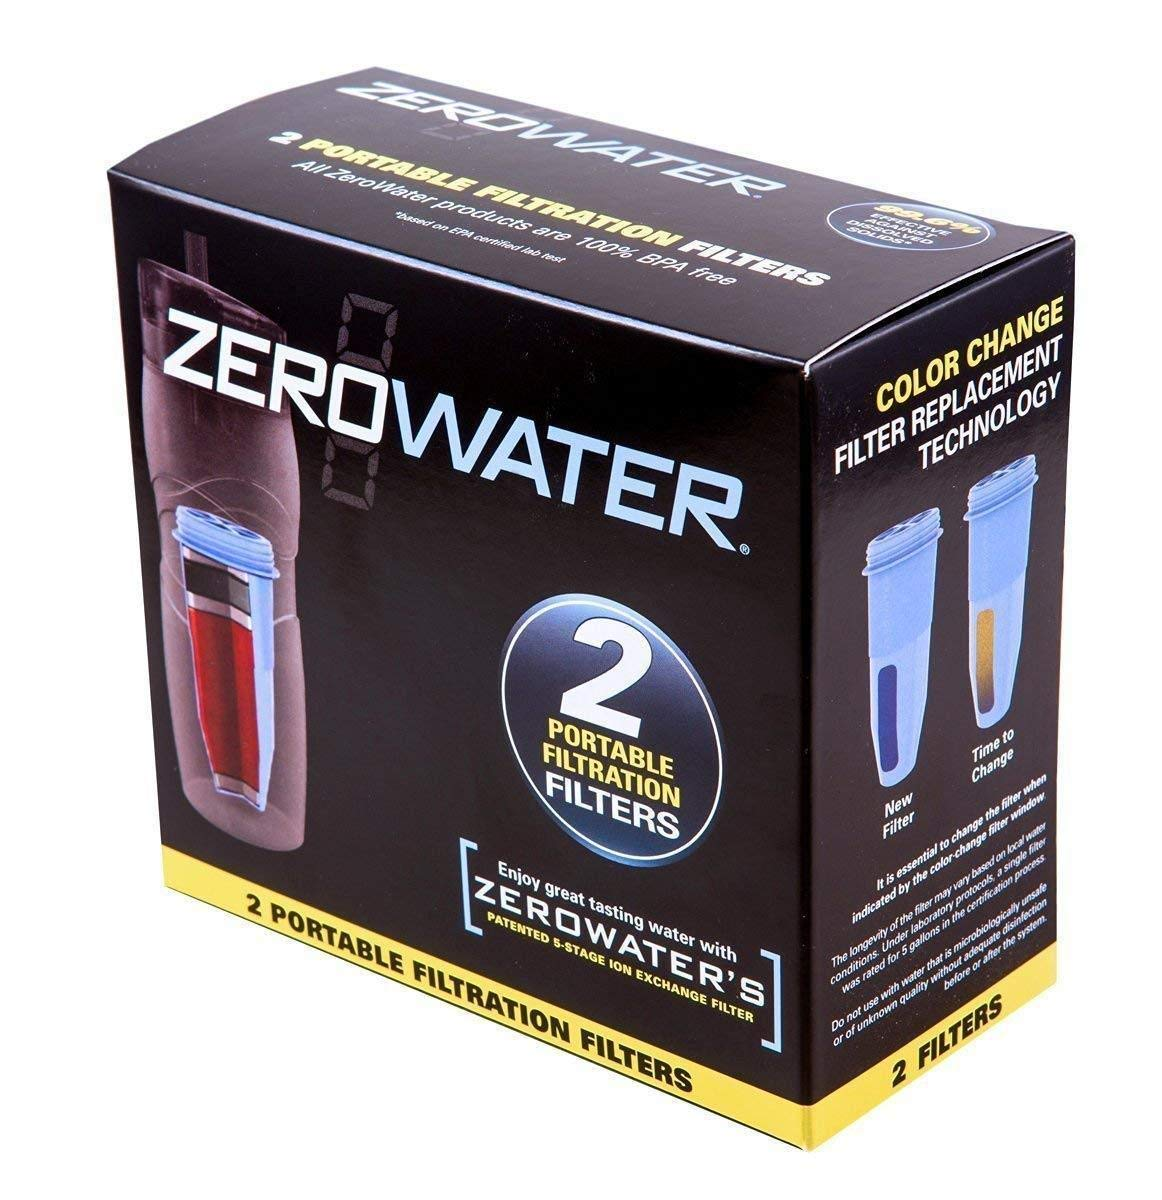 Zero Water Replacement Filter 2-Pack Portable Replacement Filters